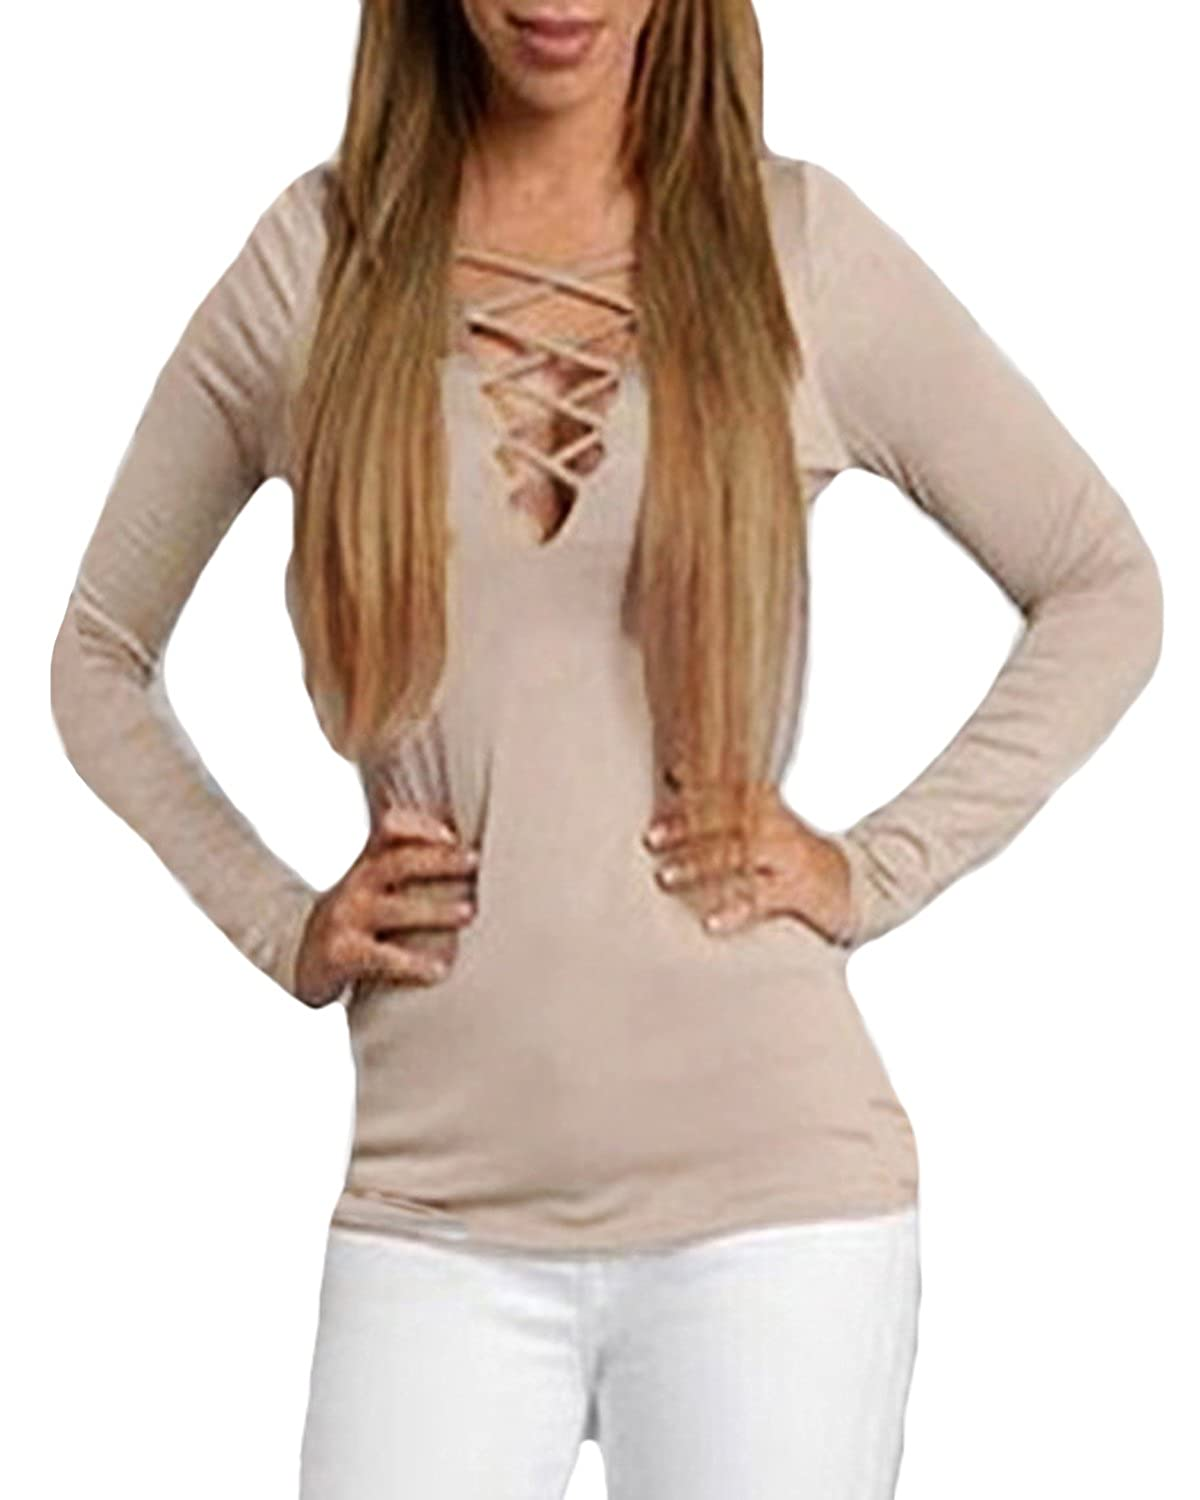 da943a8022 Auxo Women Sexy Lace-Up Front Deep V-Neck Pocket Long Sleeve Casual Blouse  Tops Shirt at Amazon Women s Clothing store